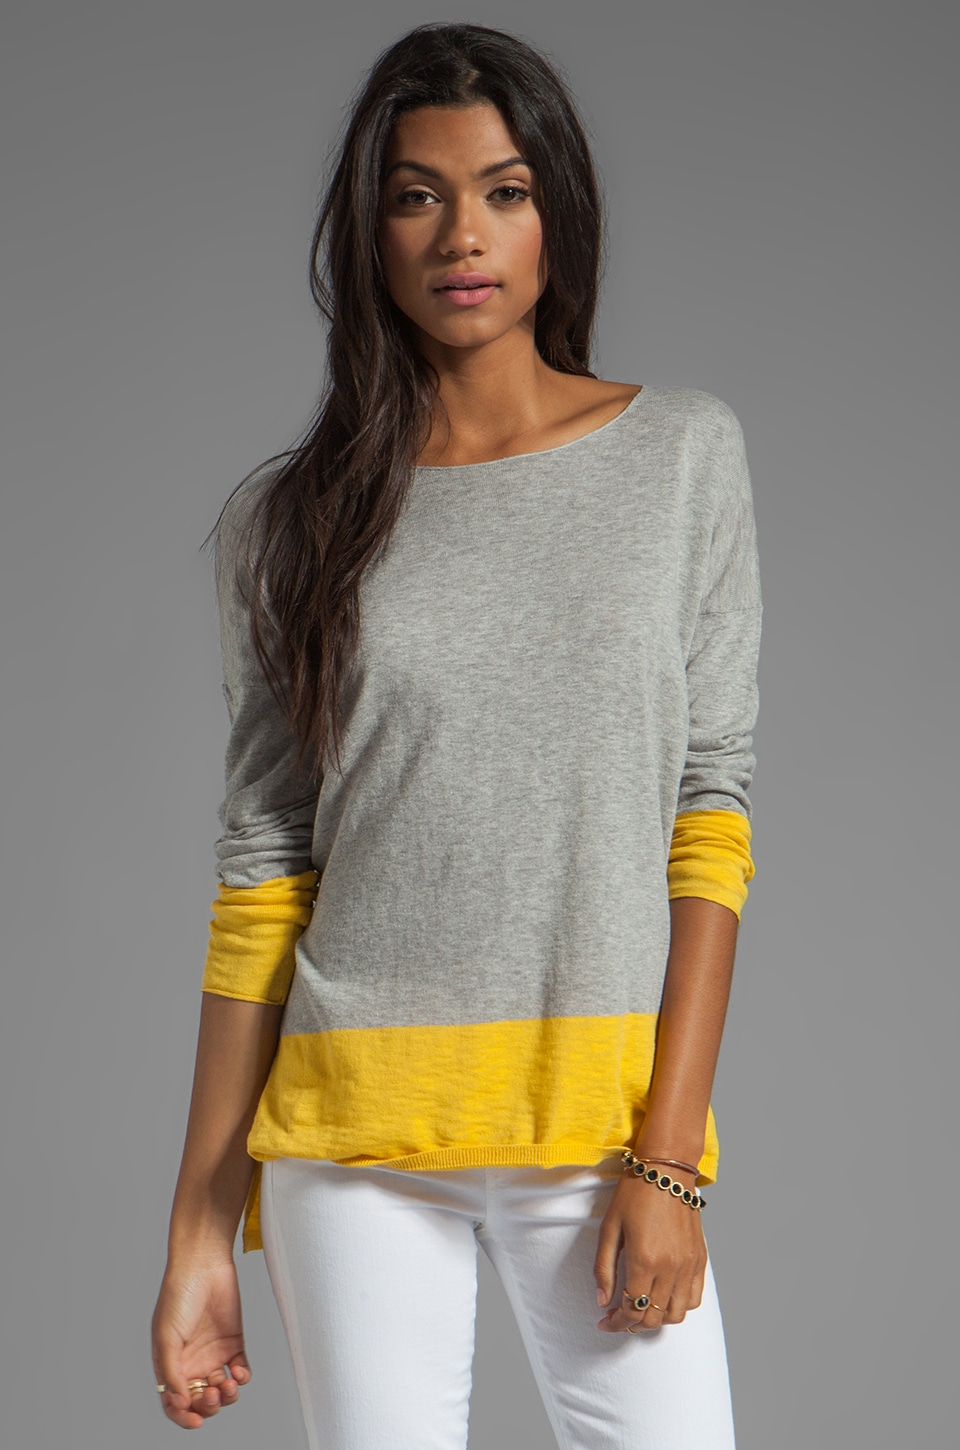 Vince Banded Colorblock Sweater in Heather Grey and Canary